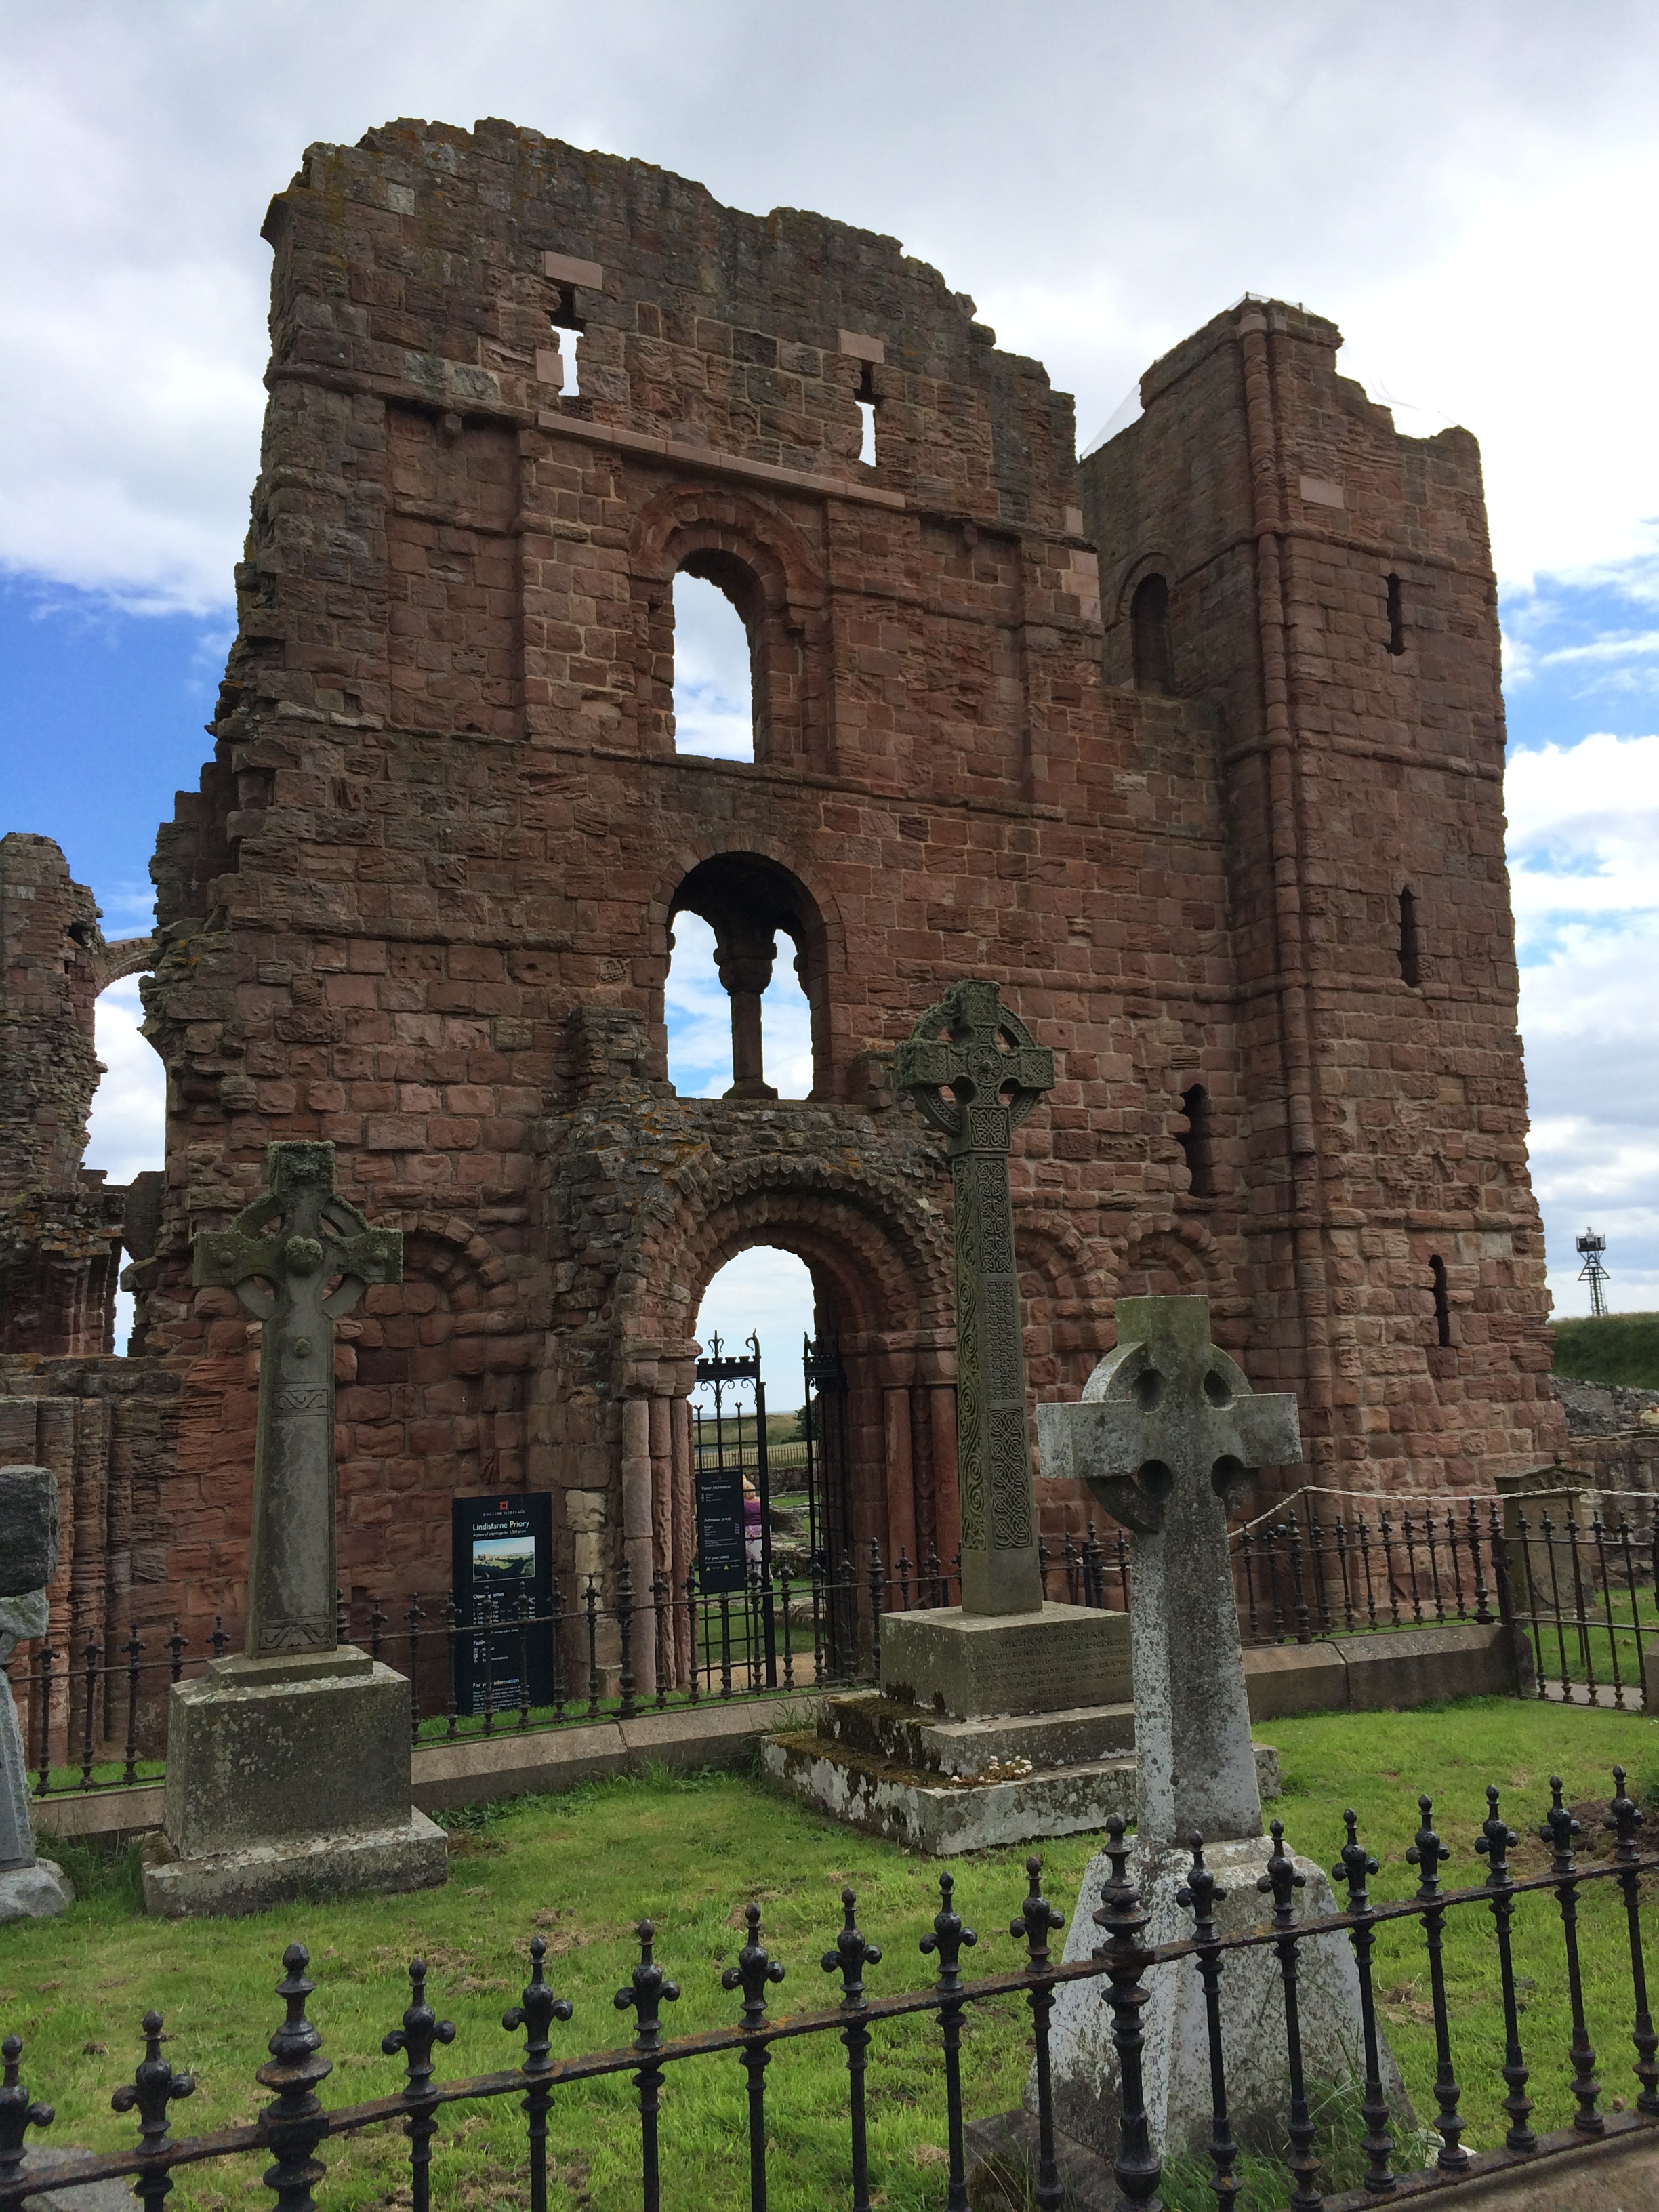 Part of the priory at Lindisfarne. Other parts have been rebuilt further.